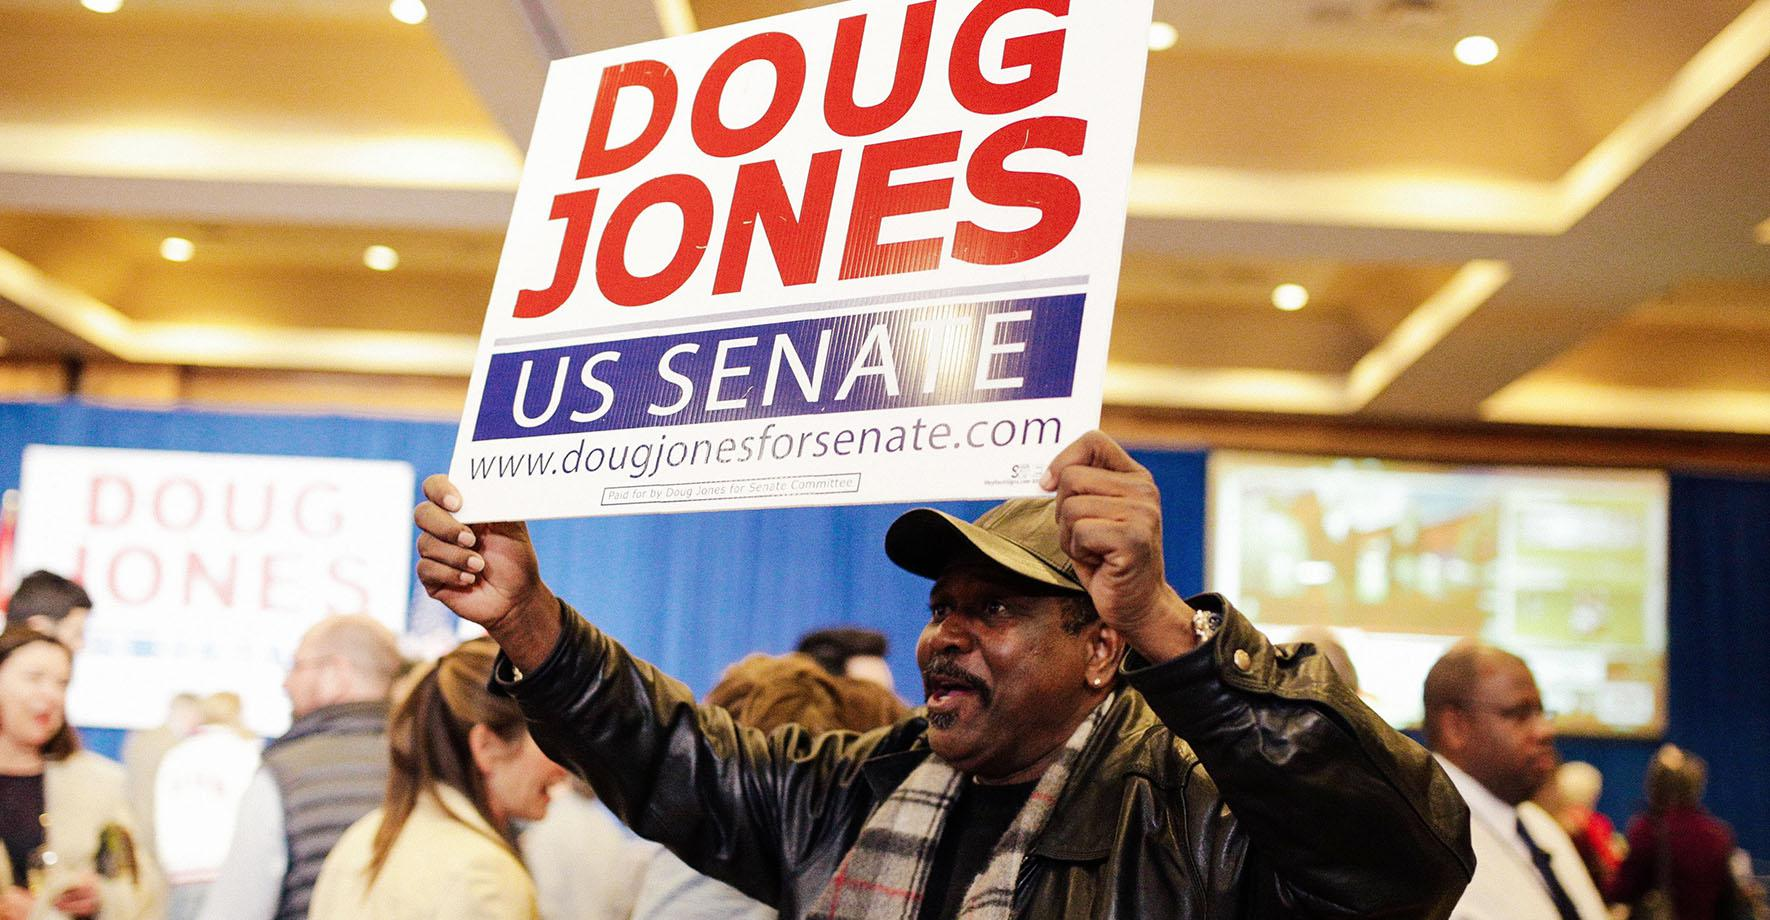 A supporter holds a sign during Democratic U.S. Senate candidate Doug Jones' election night party in Birmingham, Alabama, U.S. December 12, 2017.